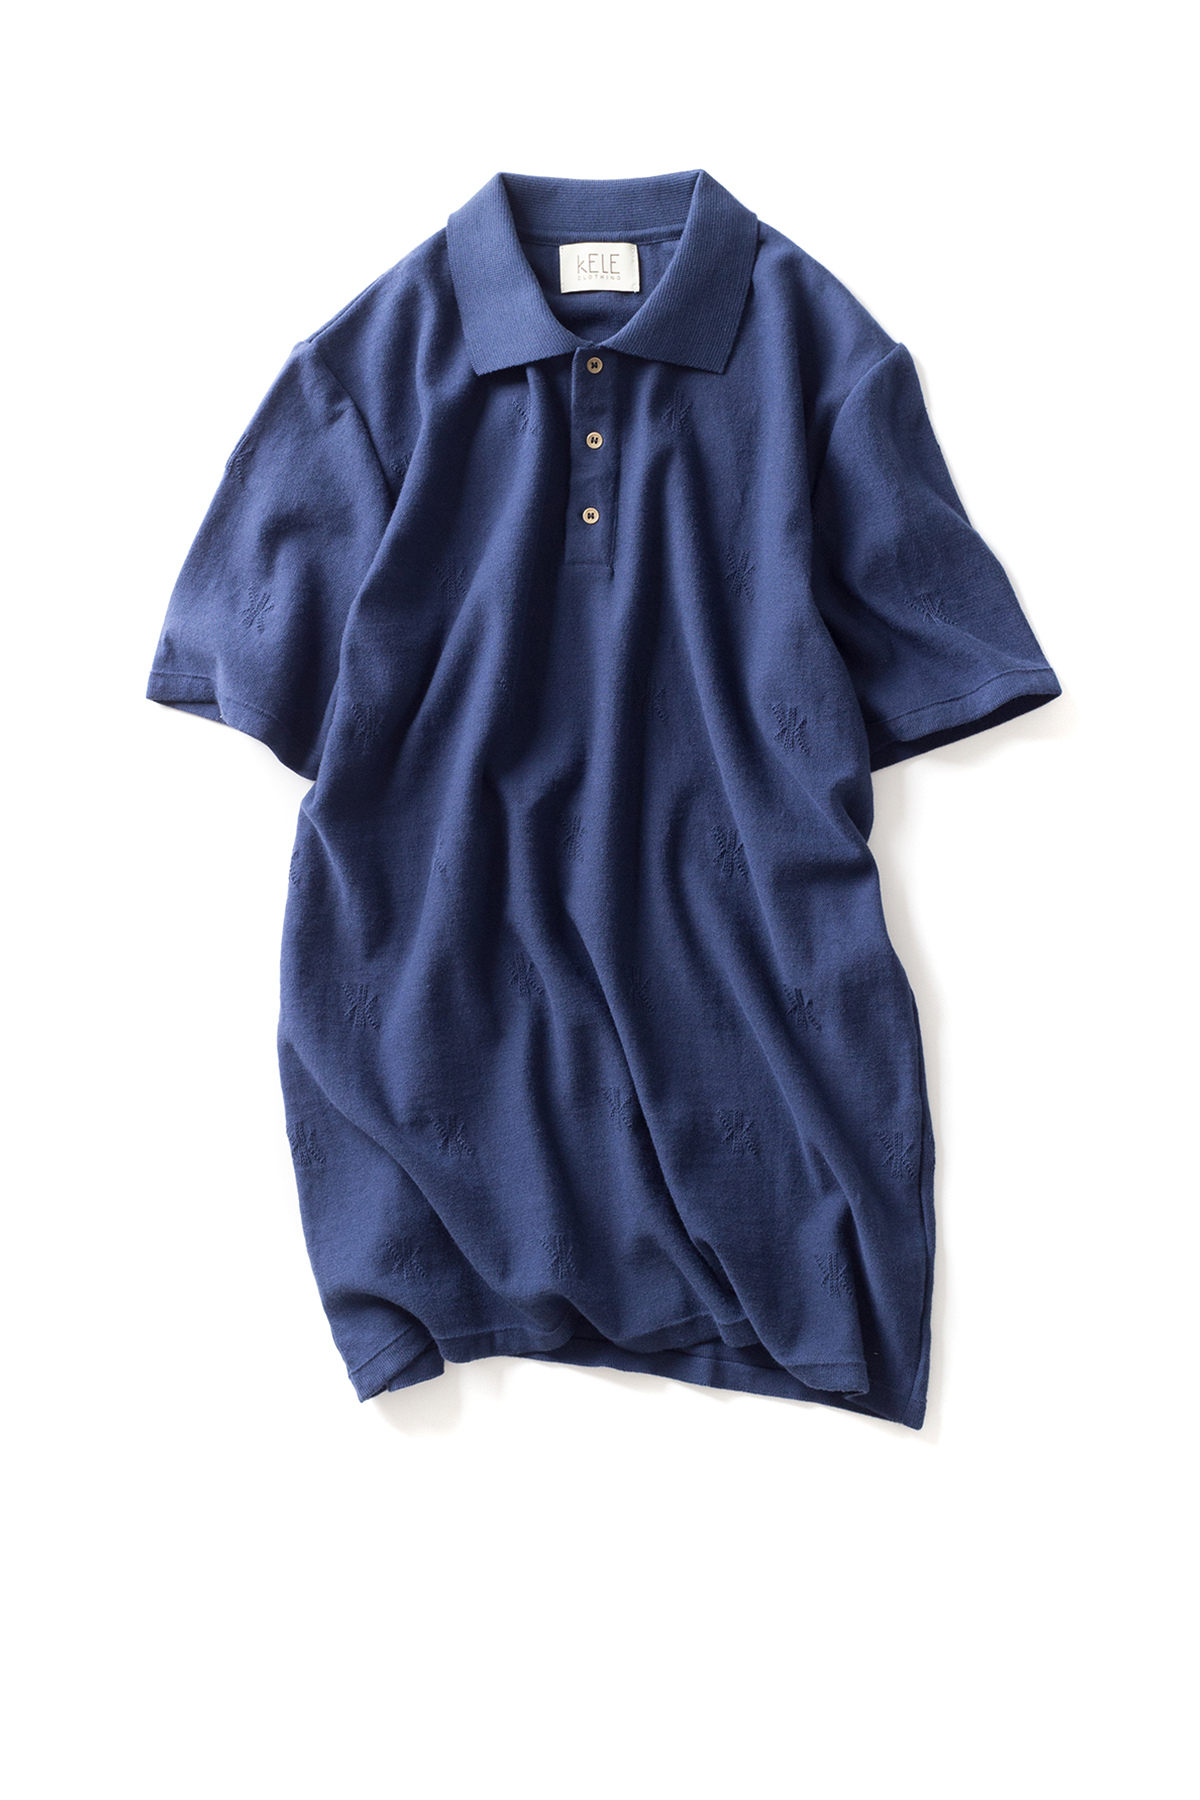 KELE Clothing : ANTLIA (Navy)